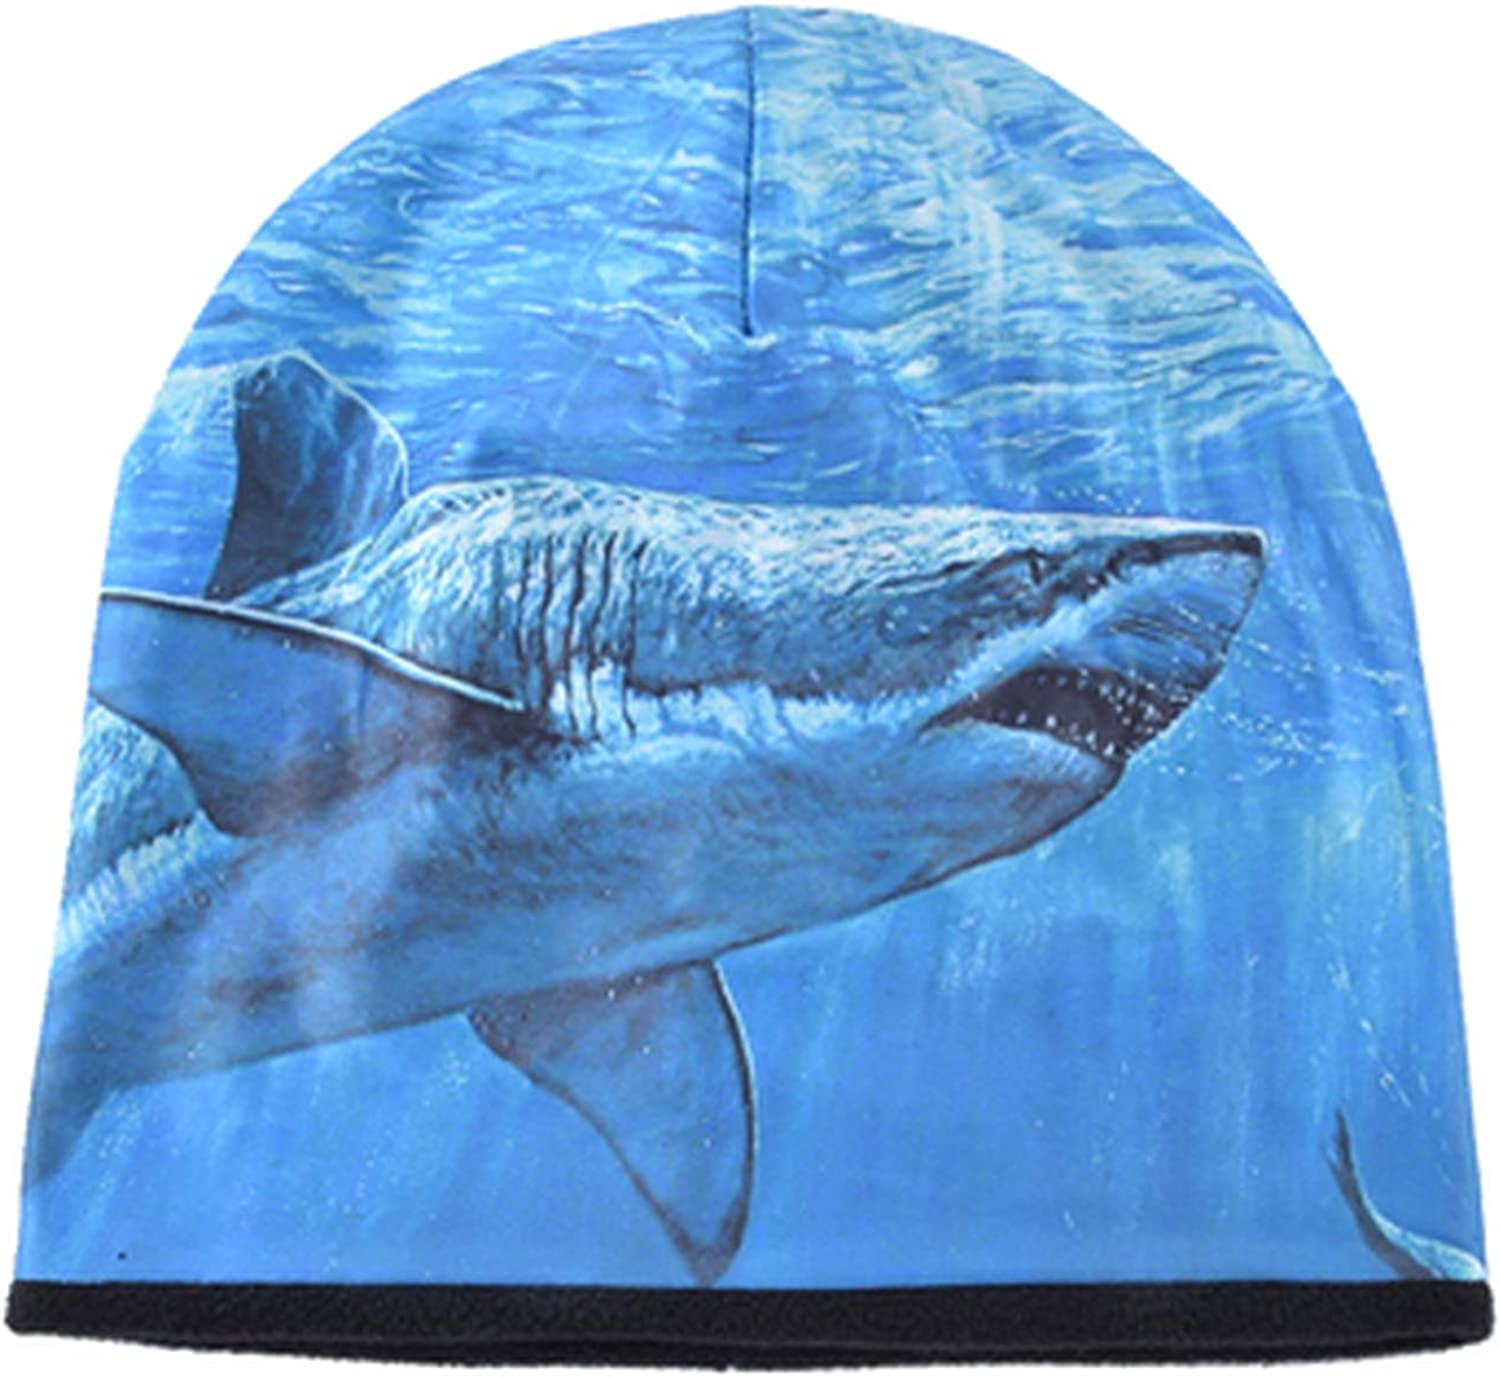 Plus Velvet Keep Warm Winter Beanie Hat Men Women Hip Hop Cap Outdoor Ski Bone Casual Hats 3D Animal Shark